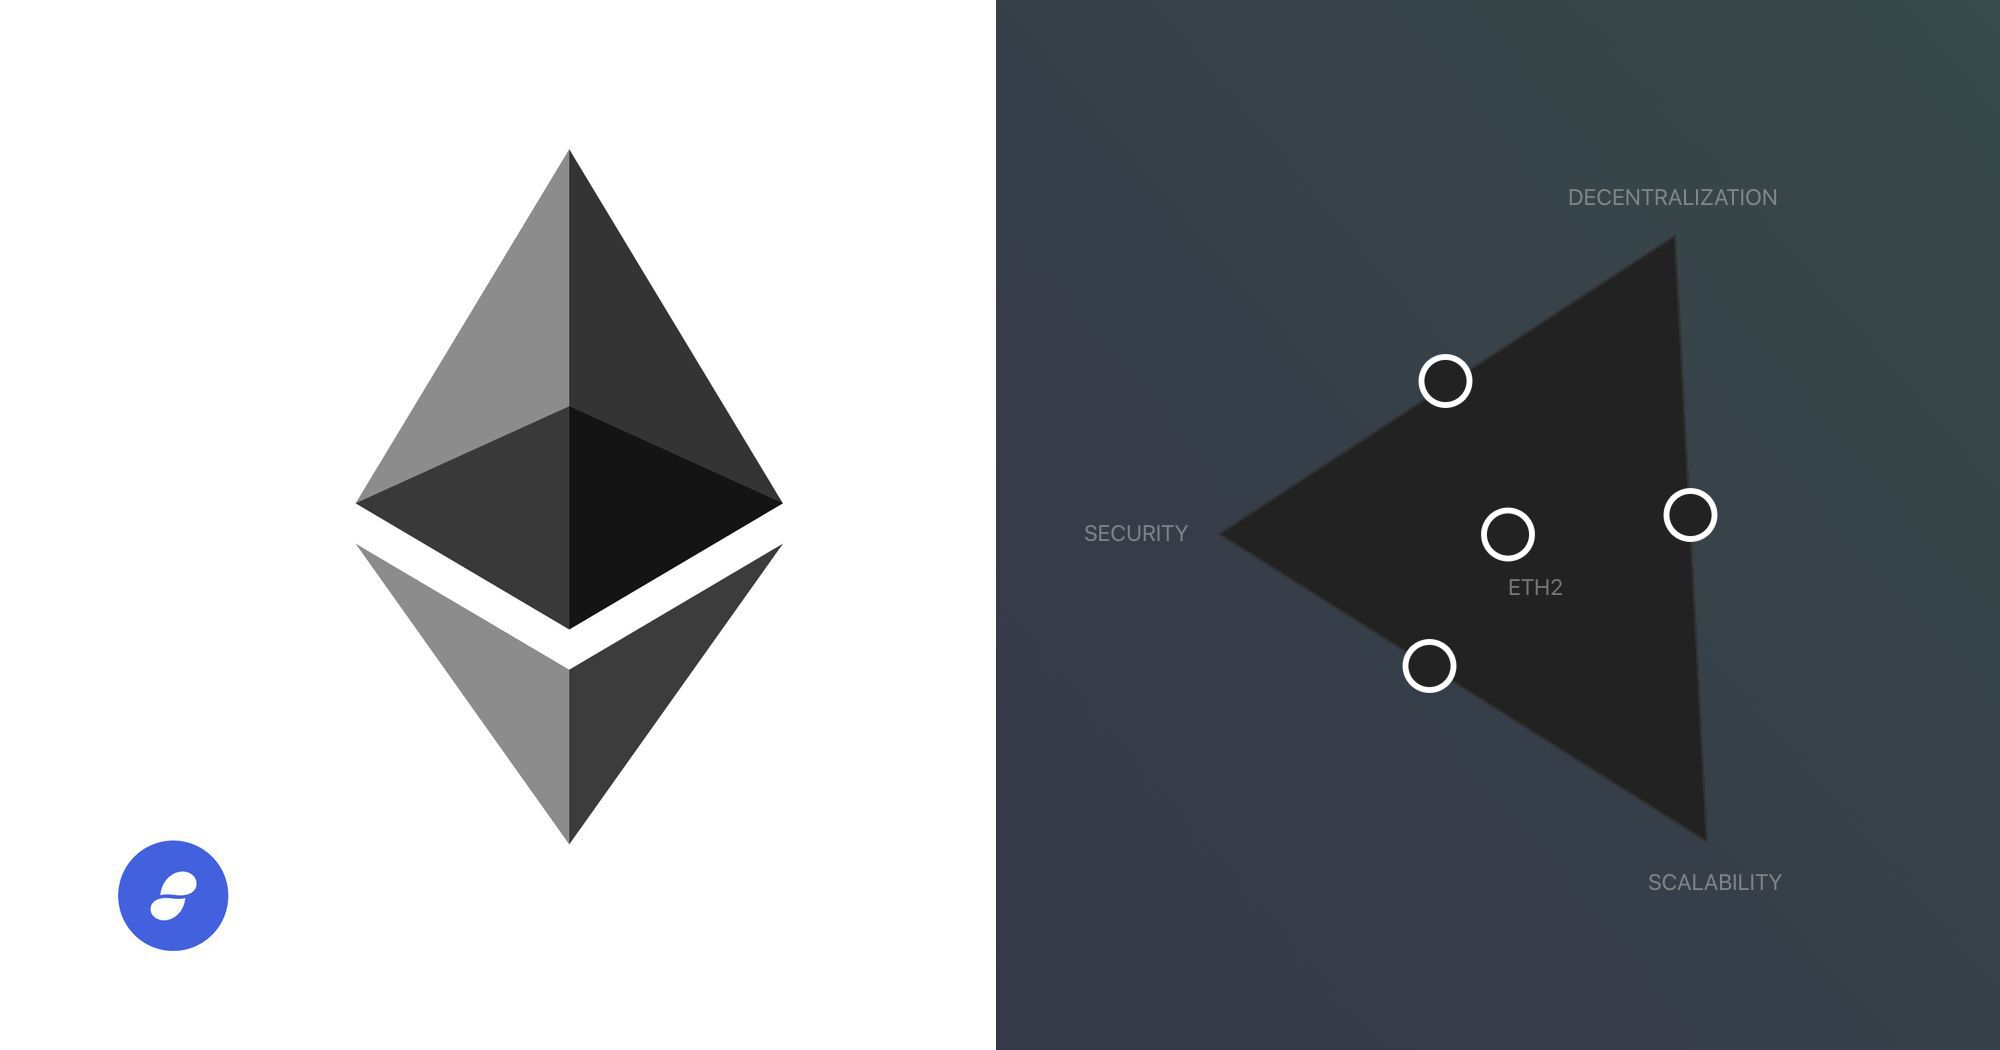 What's in store for ETH 2.0?